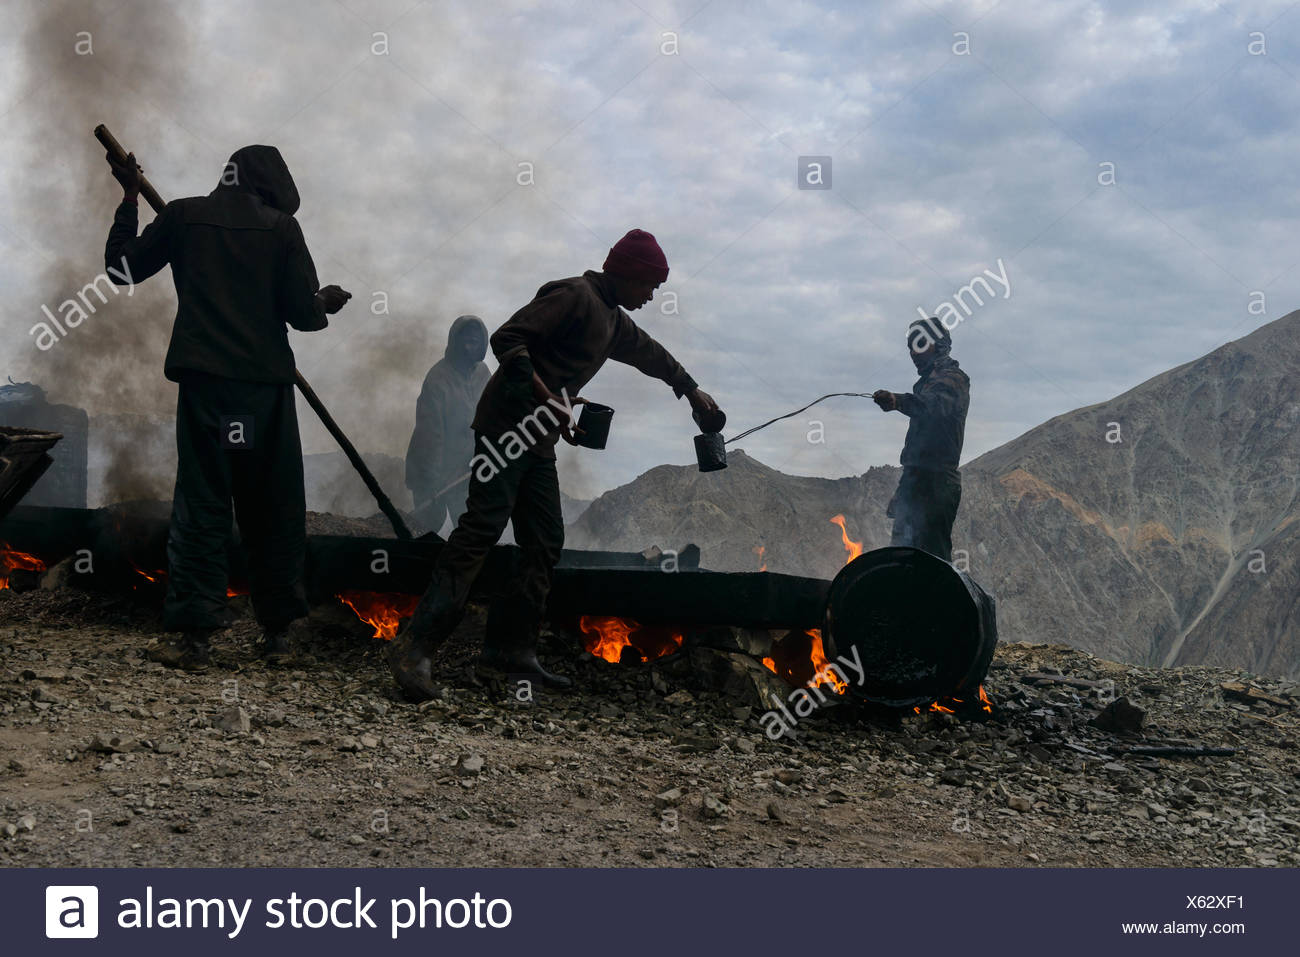 Road construction works, done under very unhealthy conditions for the workers, Lamayuru, Ladakh, Jammu and Kashmir, India - Stock Image